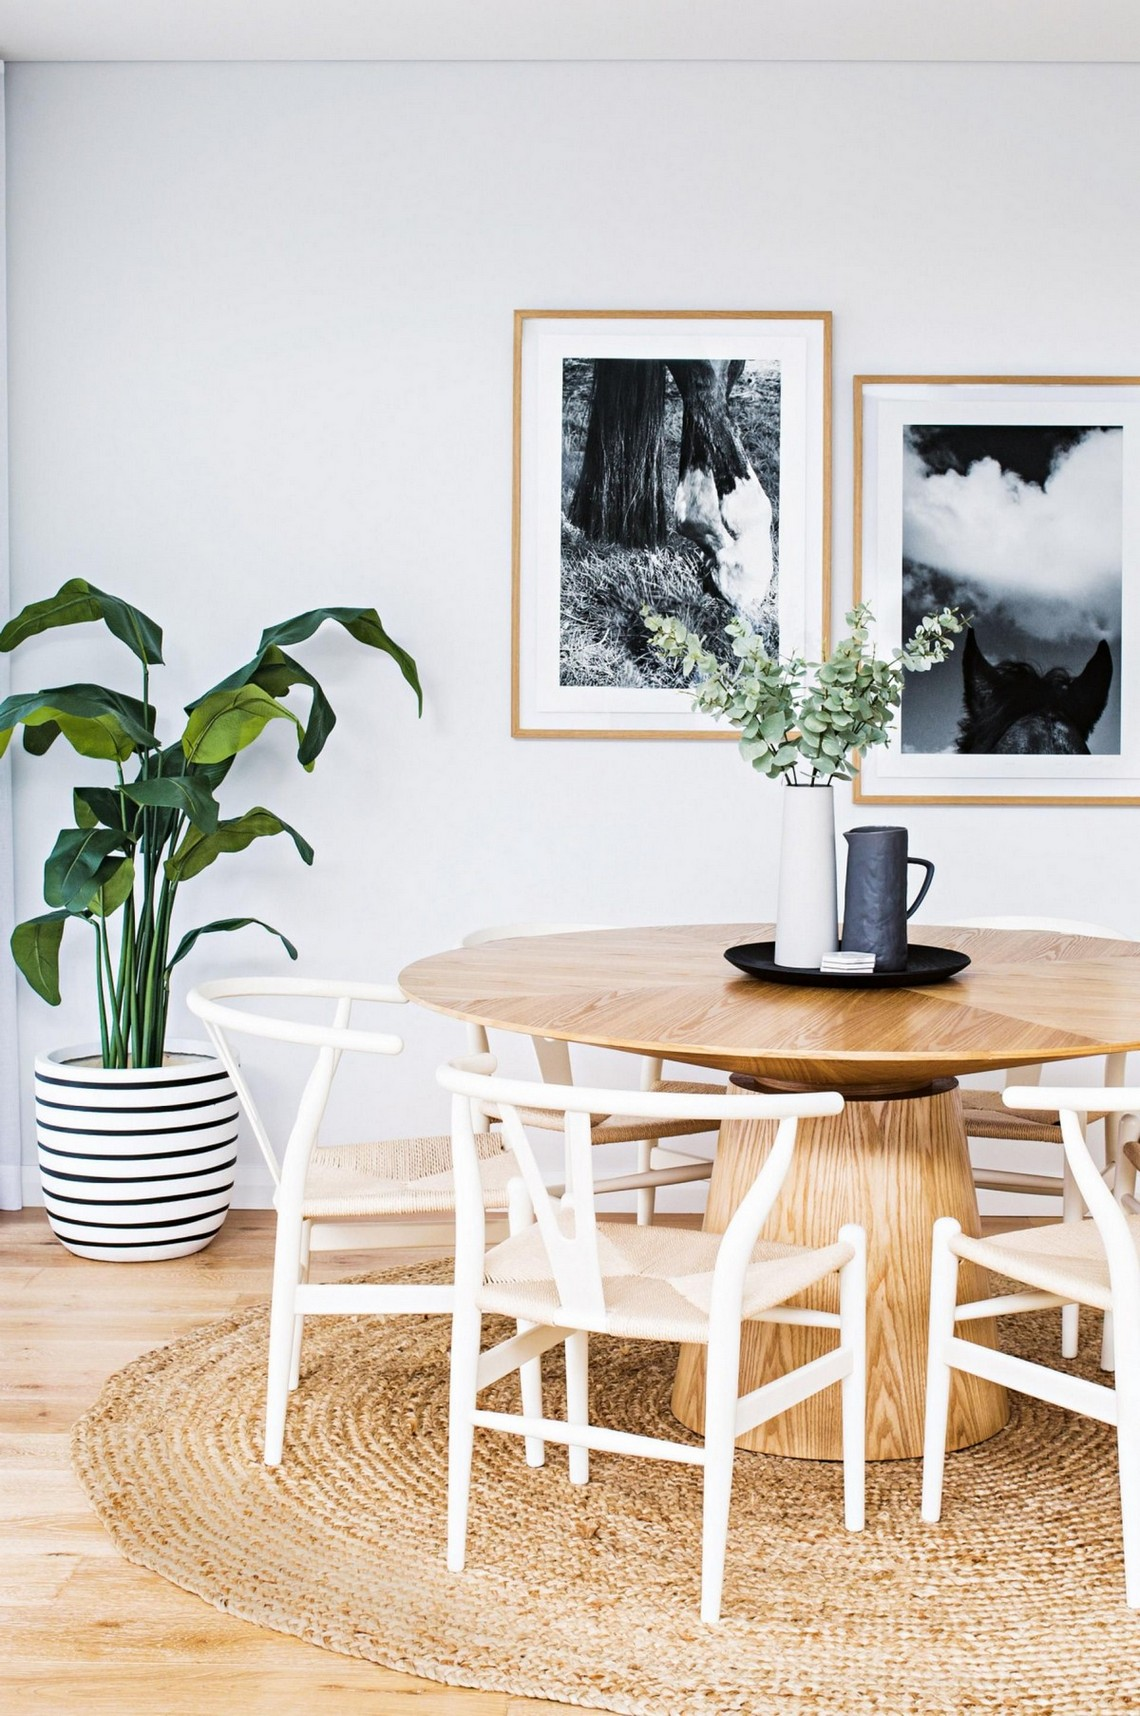 Modern Dining Room Inspirations To Look Out For In 2019 modern dining room Modern Dining Room Inspirations To Look Out For In 2019 4 1